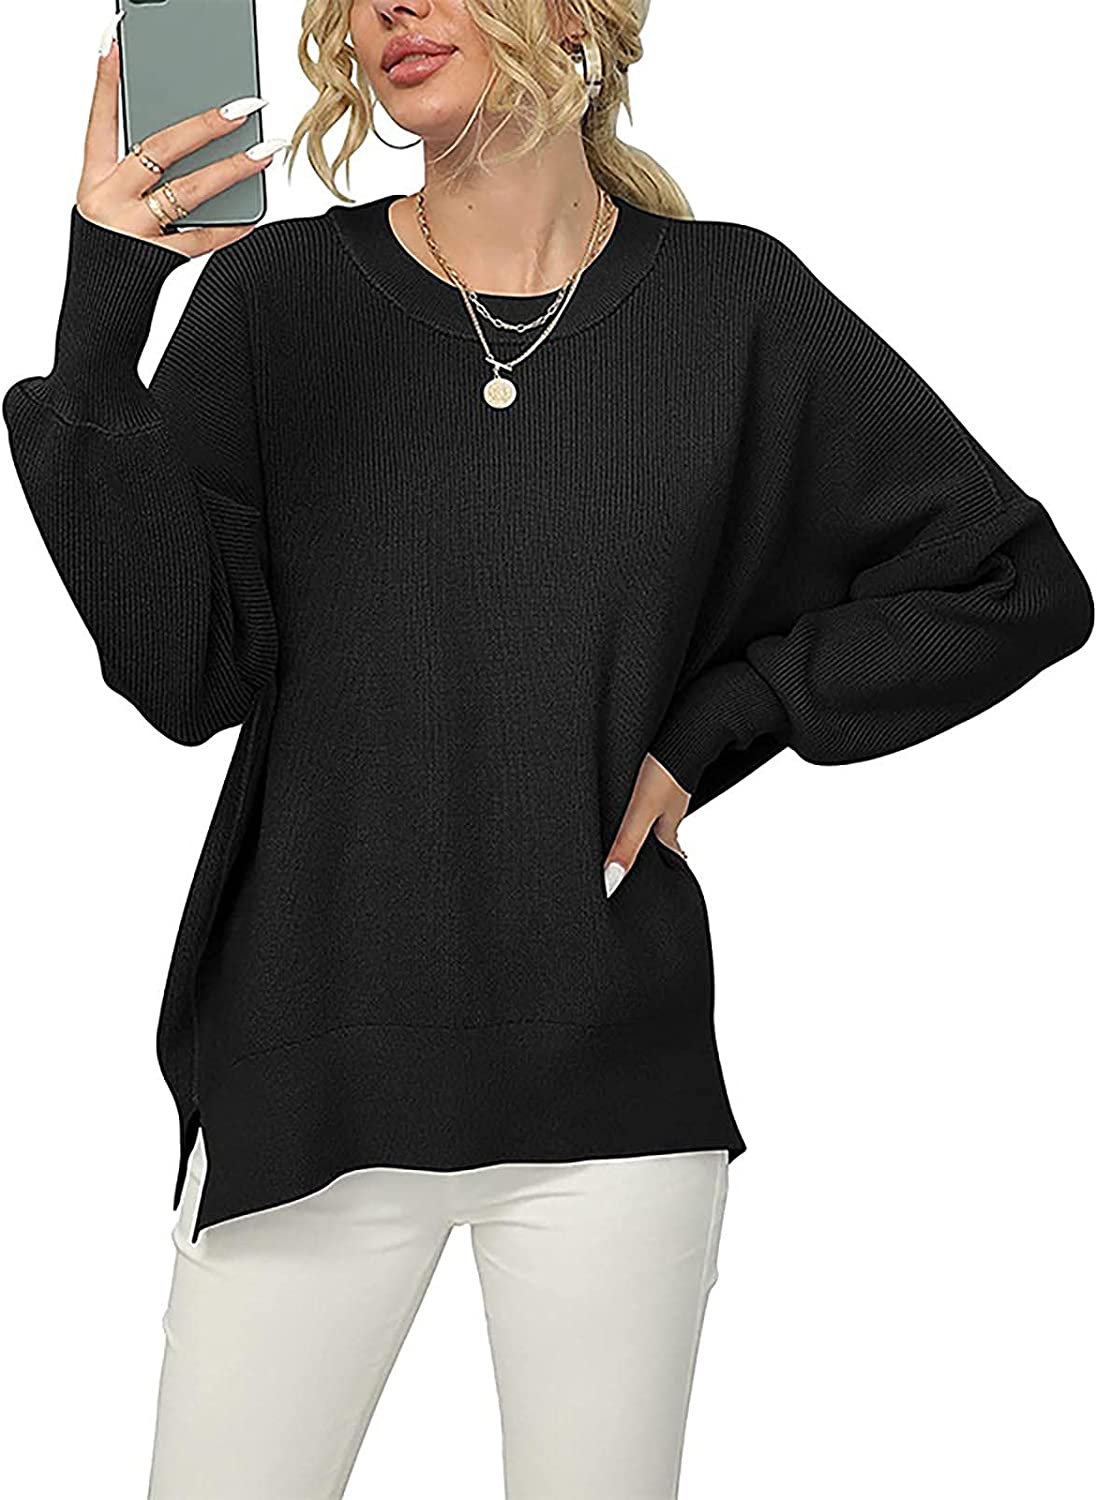 YQRDSHJS Sexy Soft Comfy Sweaters For Women Side Split Rib Knit Pullover Loose Lazy V-Neck Cardigan Sweater Jumper